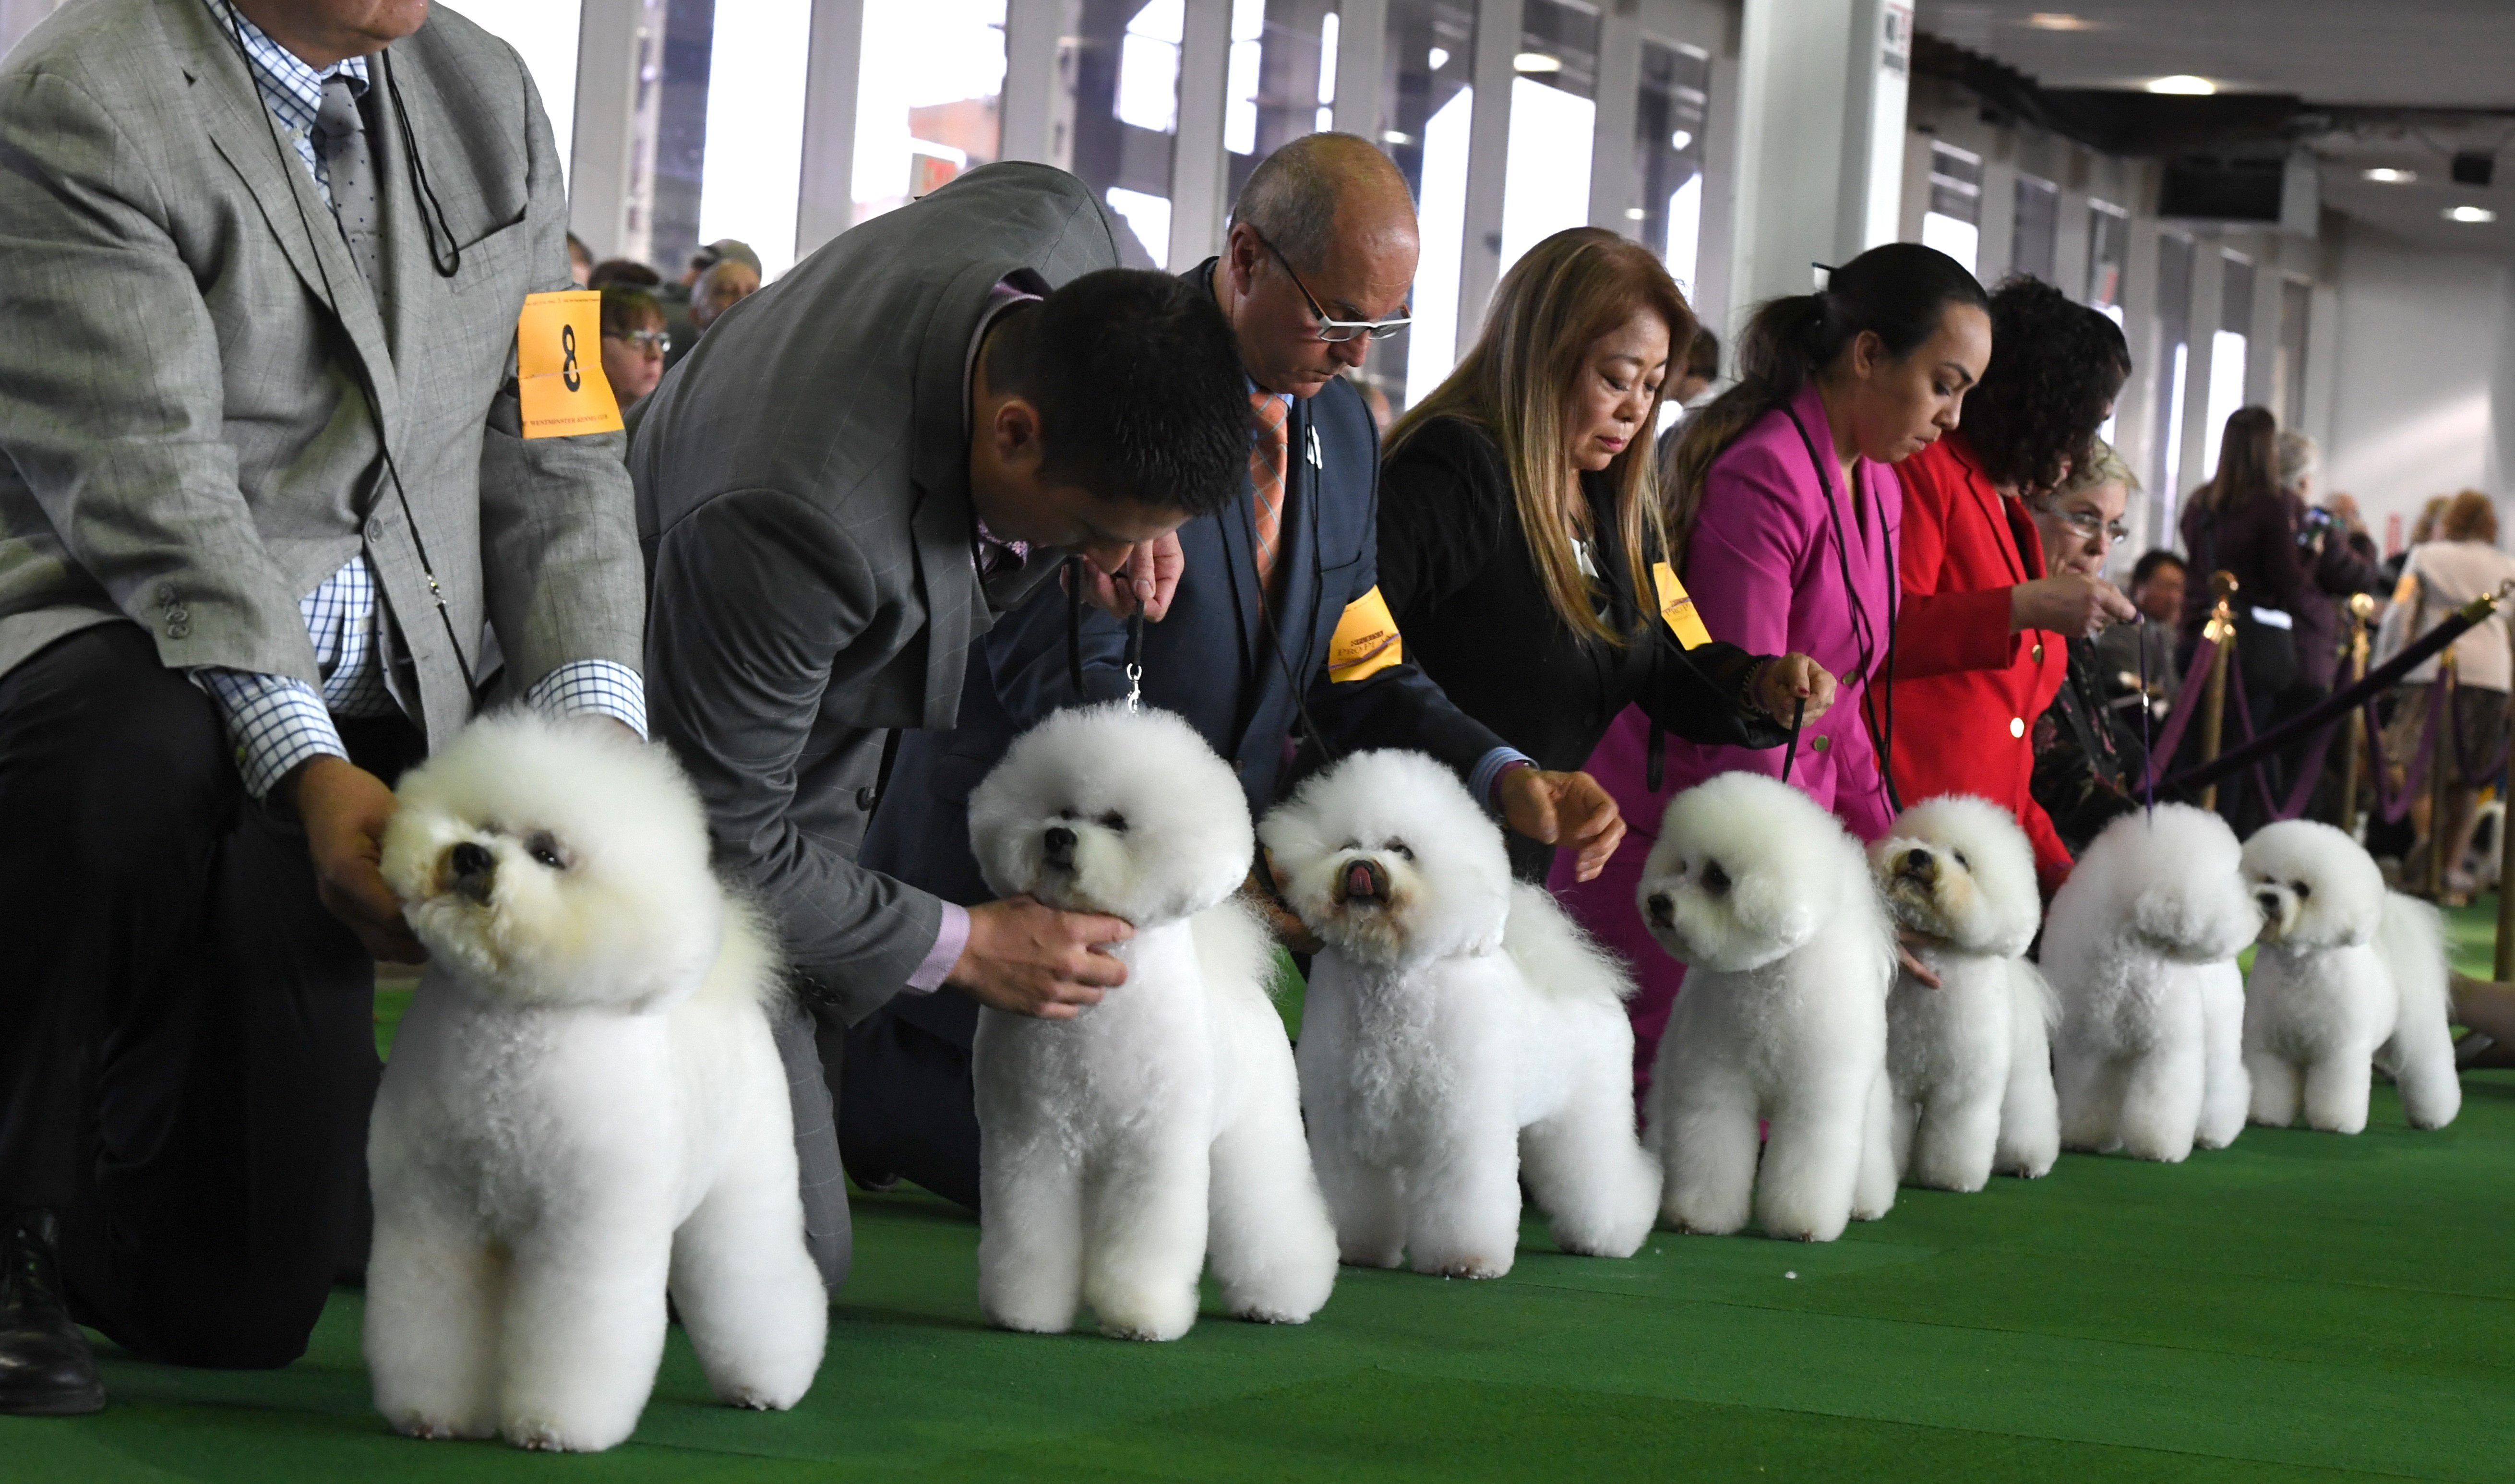 Bichon frises gather in the judges ring